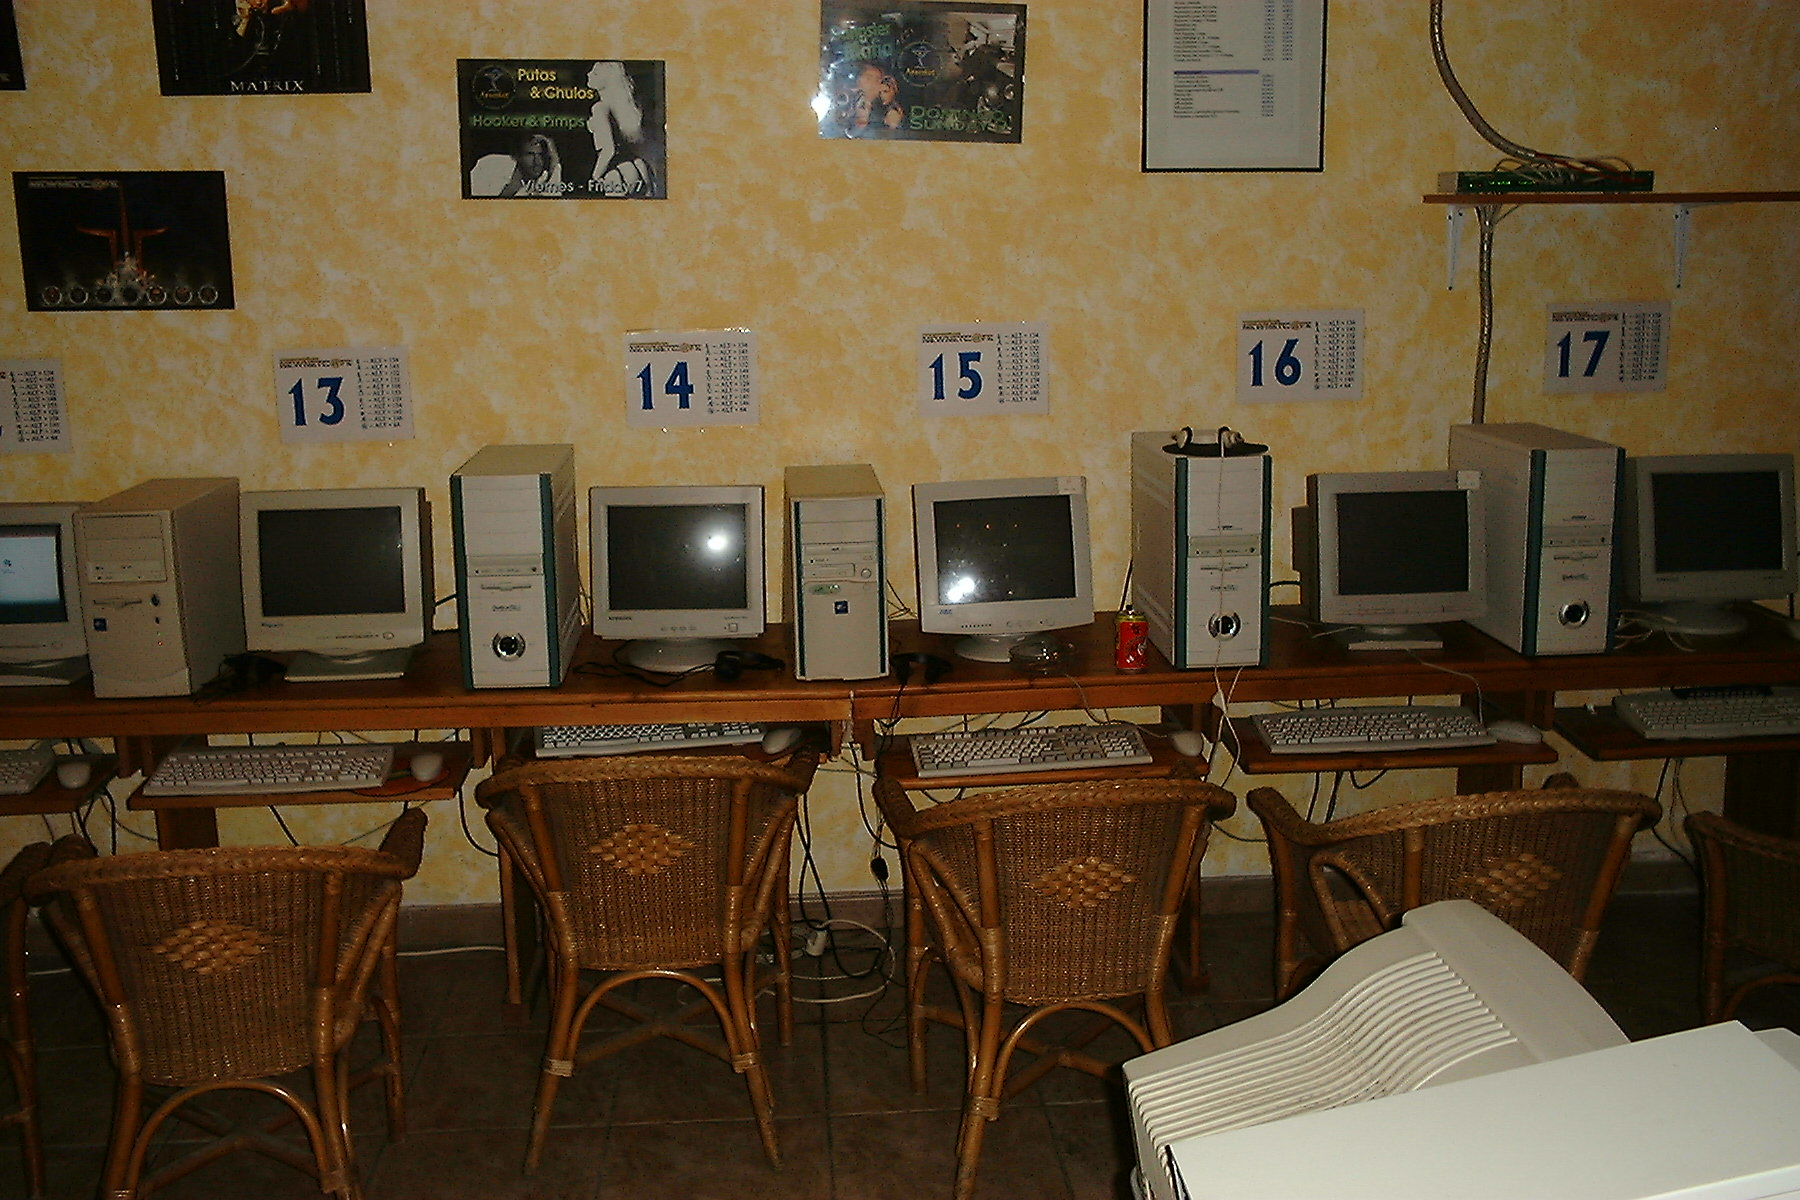 Internet Cafe - Image taken from Open Photo